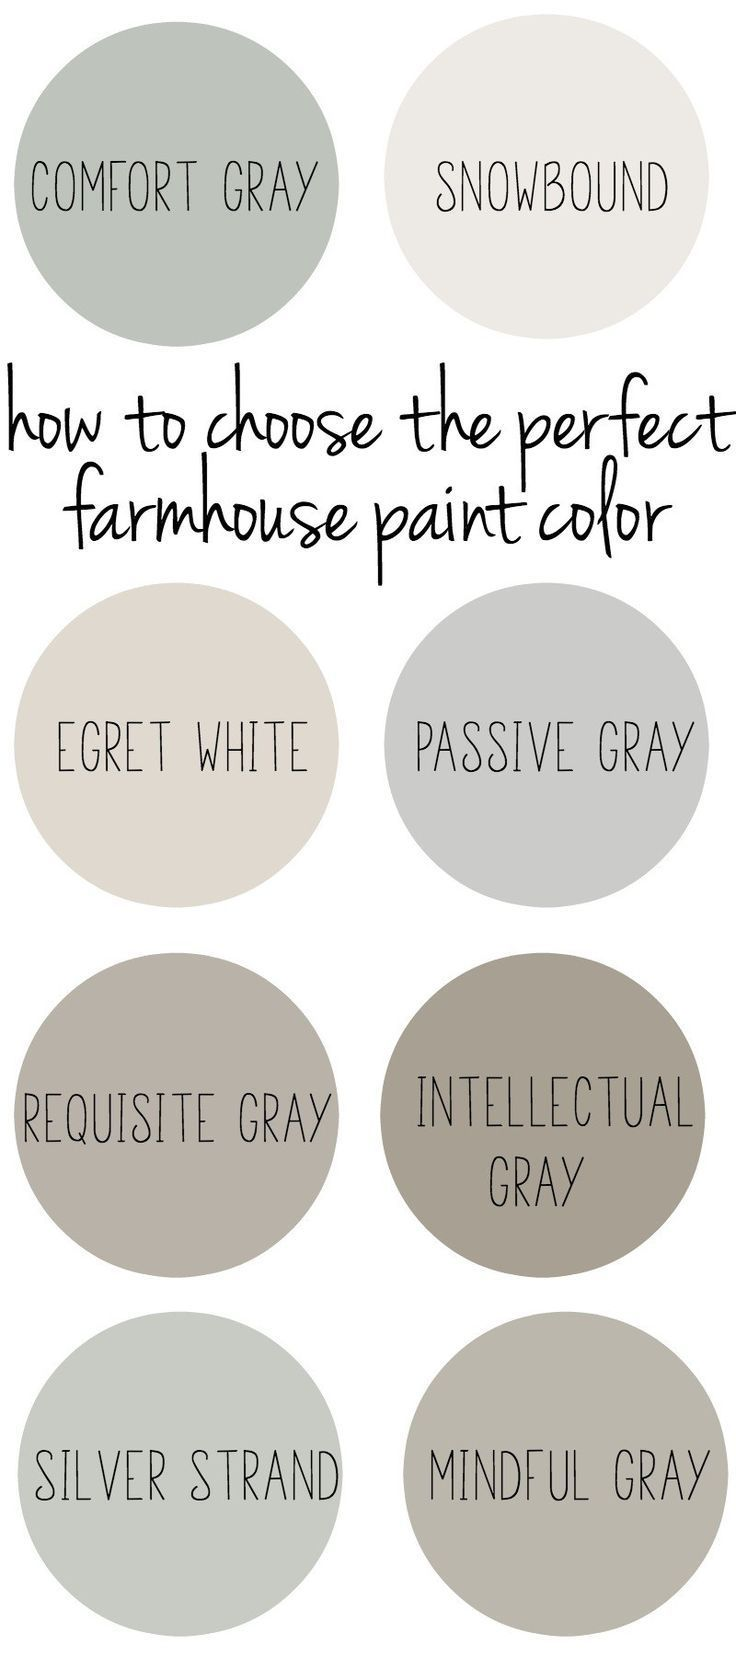 Color crimson on pinterest style guides painted - How To Choose The Perfect Farmhouse Paint Colors